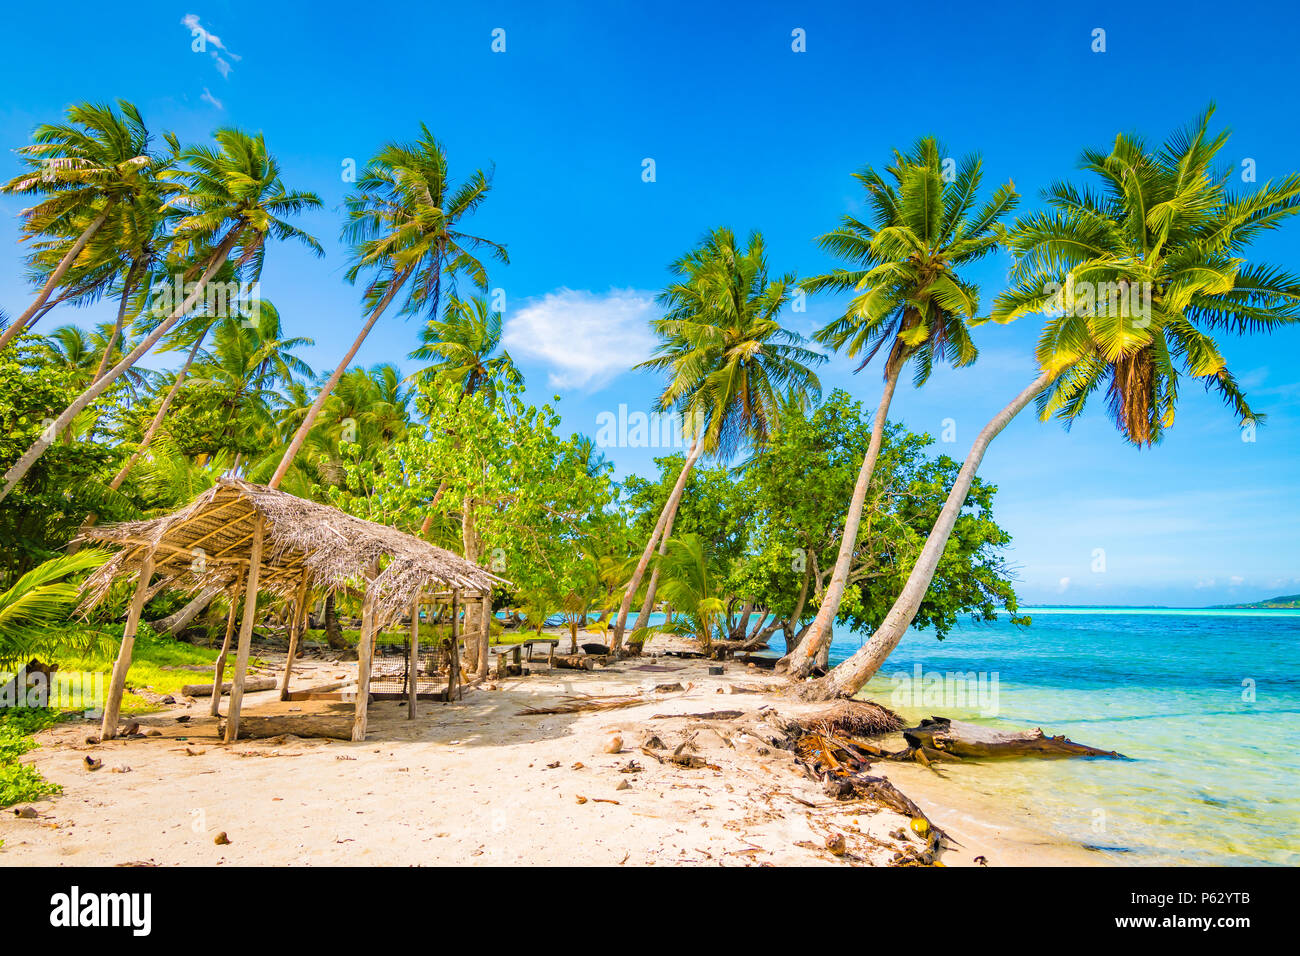 Palm trees and staw hut on tropical island. Tahaa, French Polynesia. - Stock Image